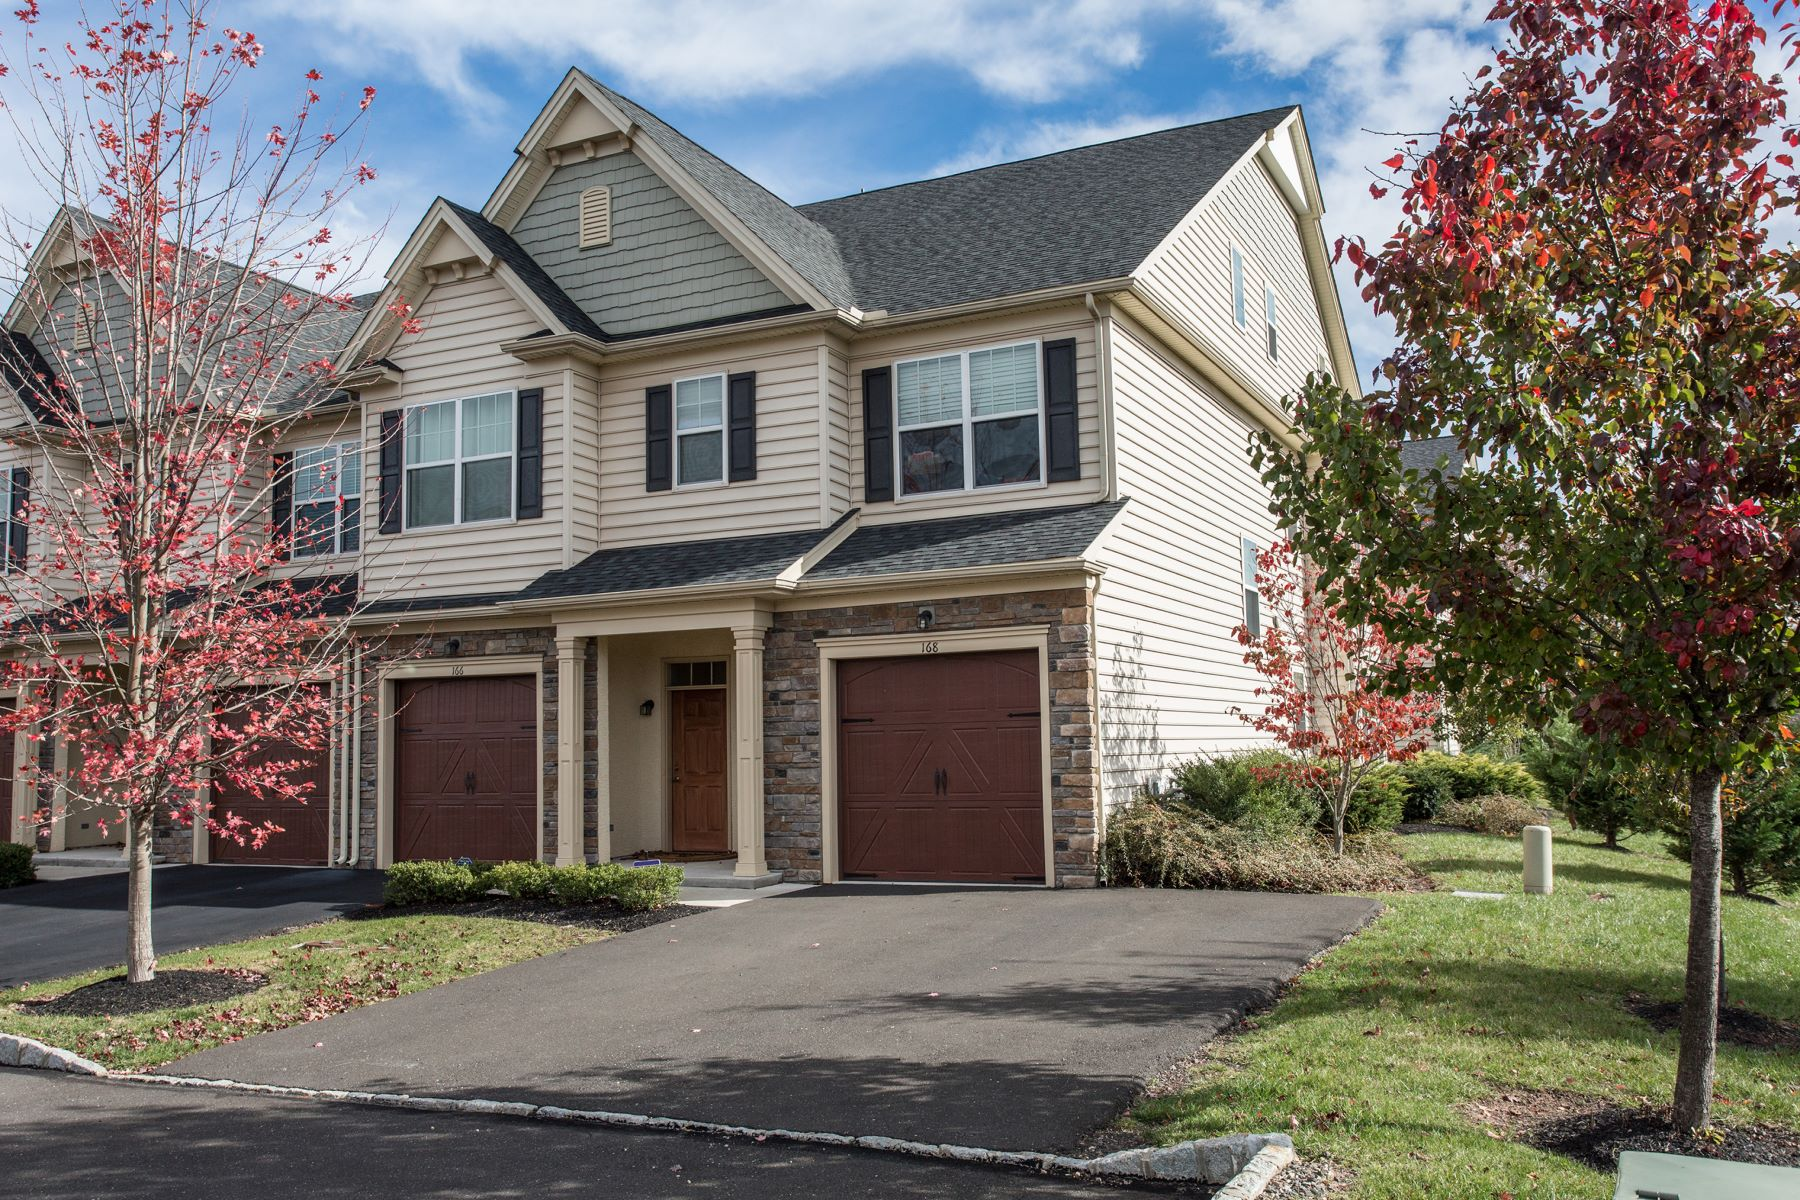 Single Family Home for Sale at The Enclave 168 SERENITY CT, Norristown, Pennsylvania, 19401 United States